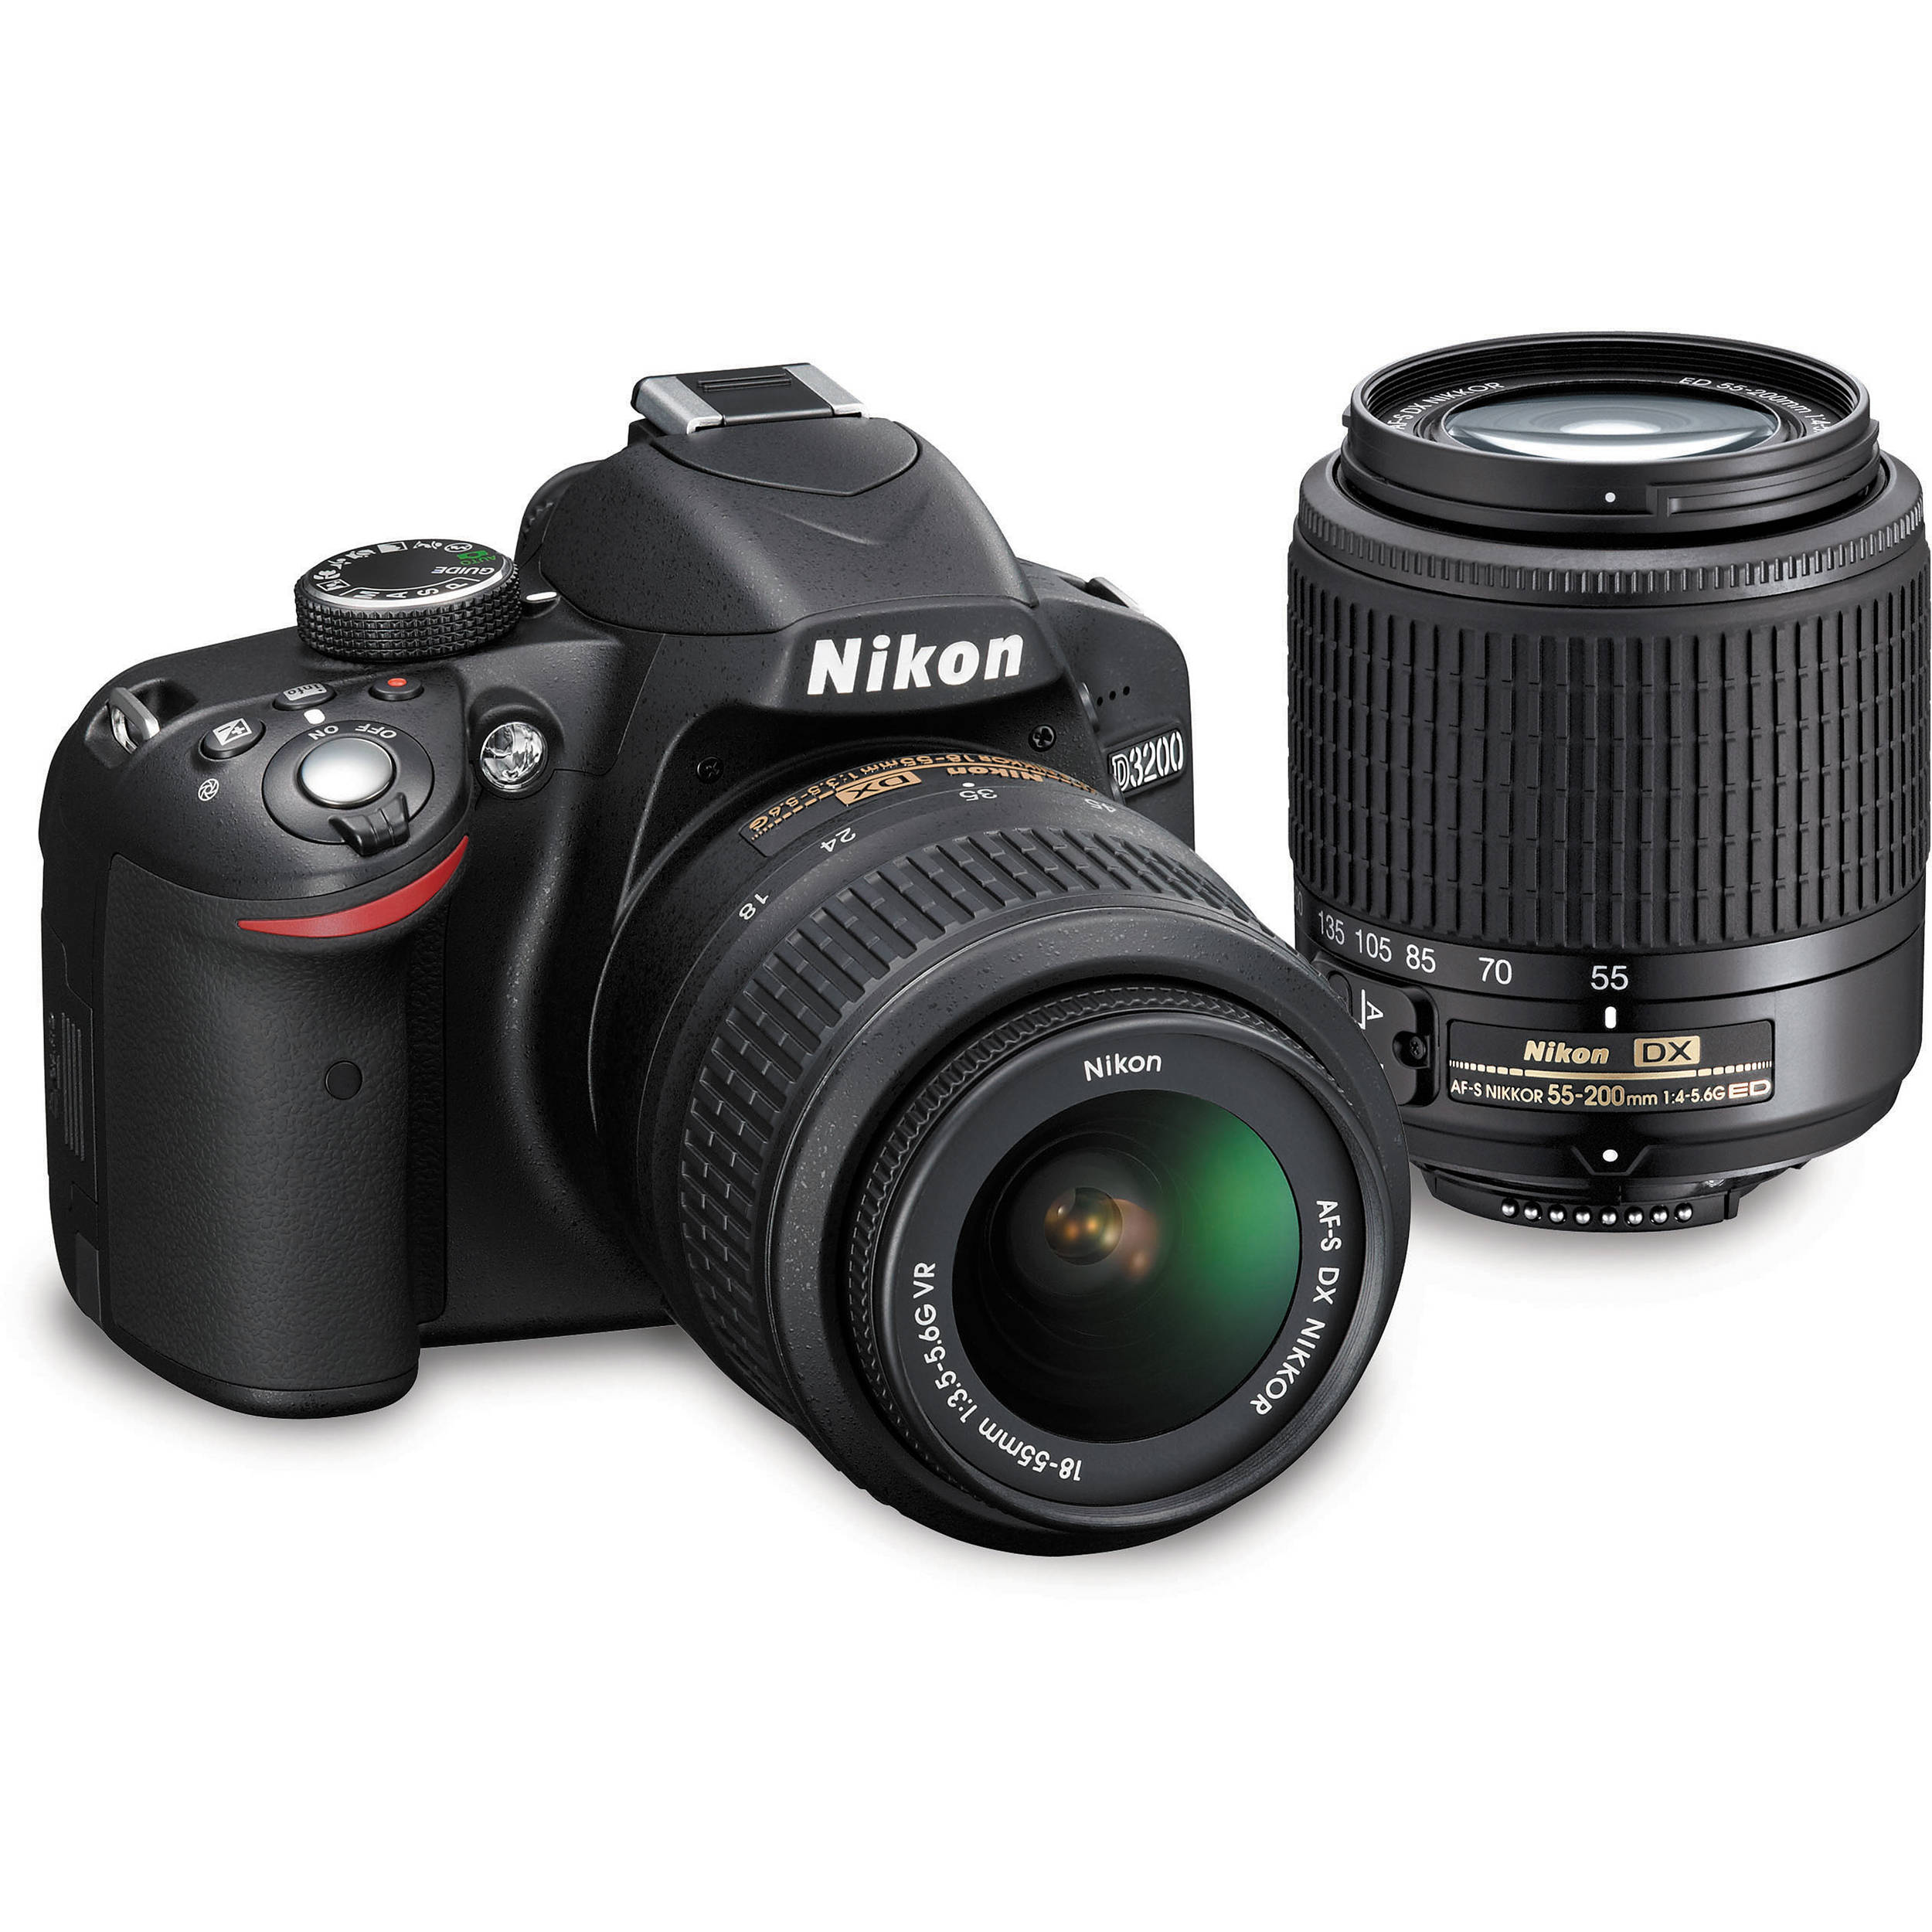 nikon d3200 dslr camera kit with 18 55mm vr and 55 200mm 13309 rh bhphotovideo com Nikon D3200 Tips Nikon D3200 Parts